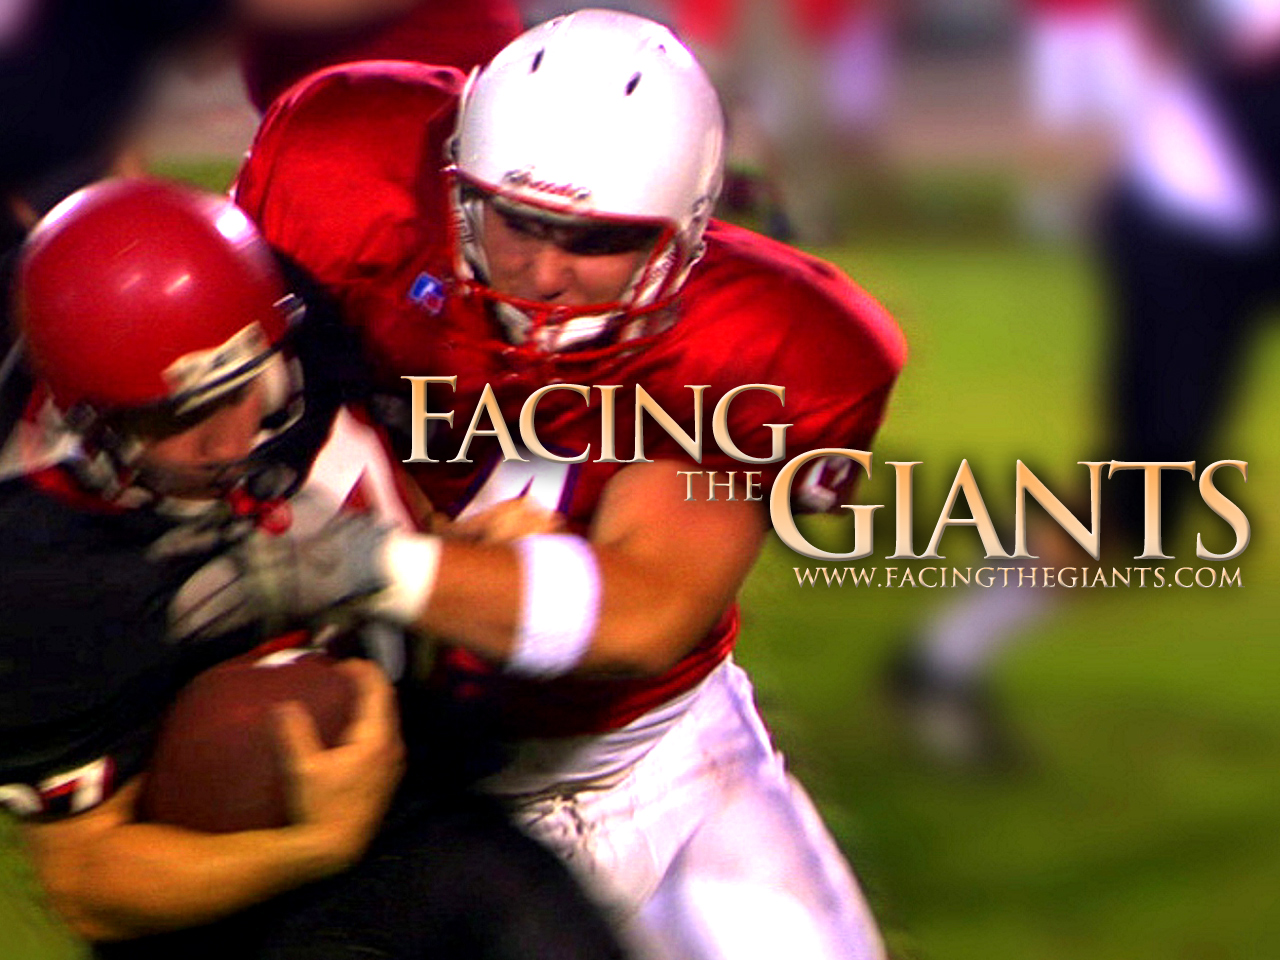 http://4.bp.blogspot.com/-mLrYmmrAnP0/Tyed_h9U04I/AAAAAAAAAA0/bZv0OCUhxqw/s1600/facing-the-giants-08.jpg